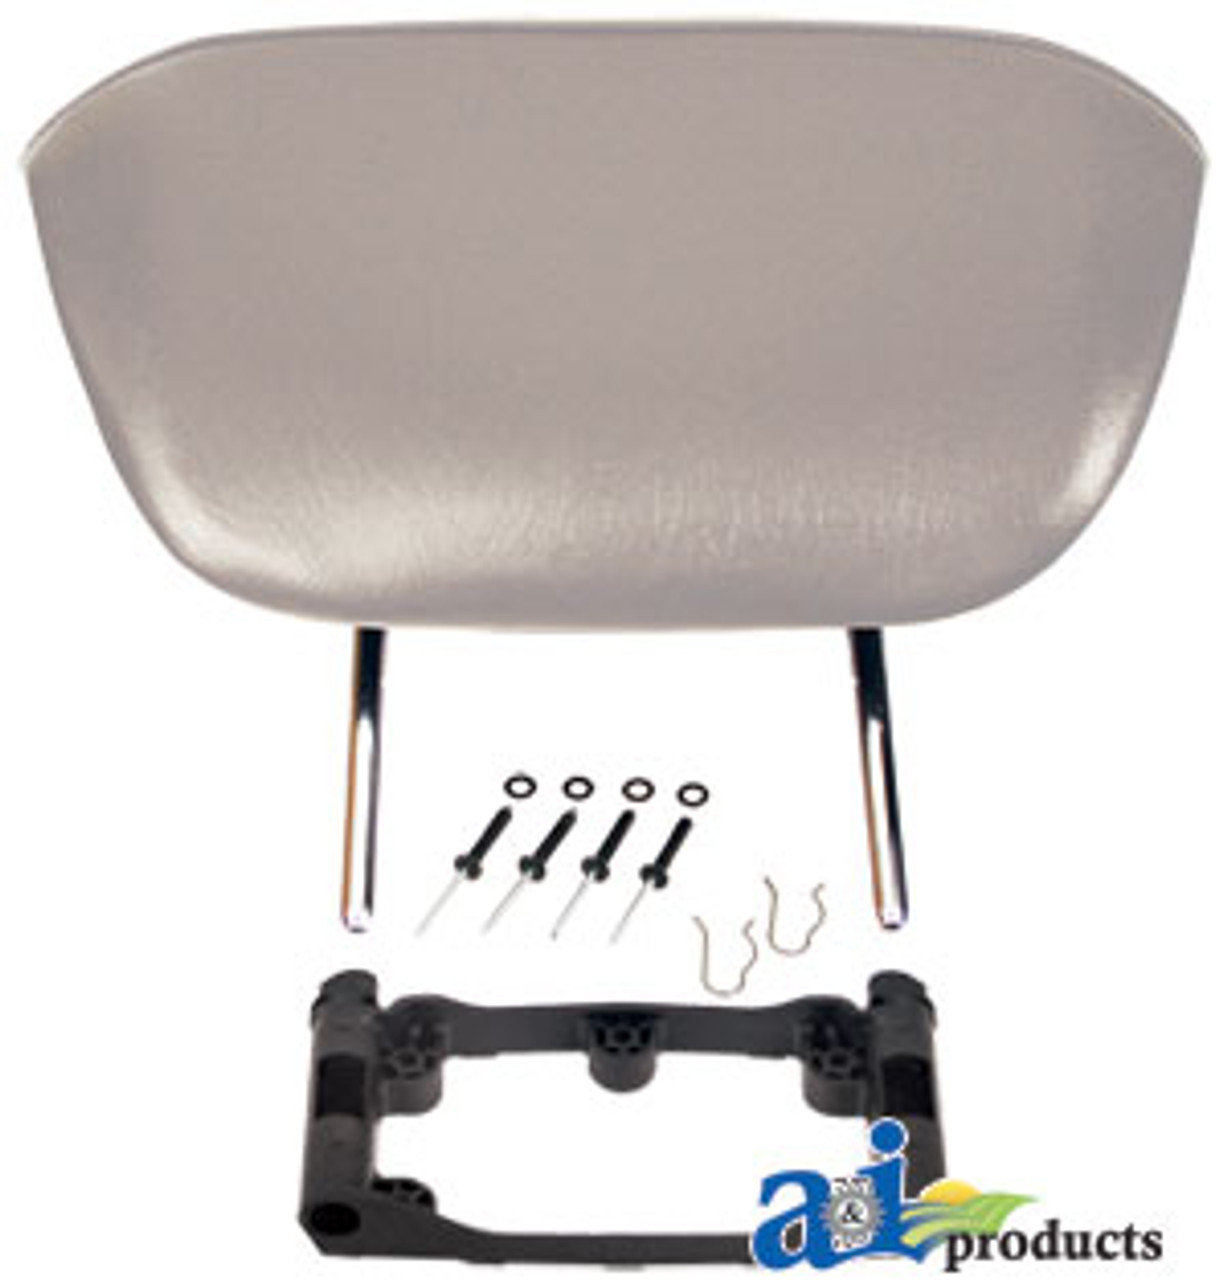 Backrest Extension Kit, GRY VINYL (For use on MSG 65 & 75 Seats) A-BRK65GRV